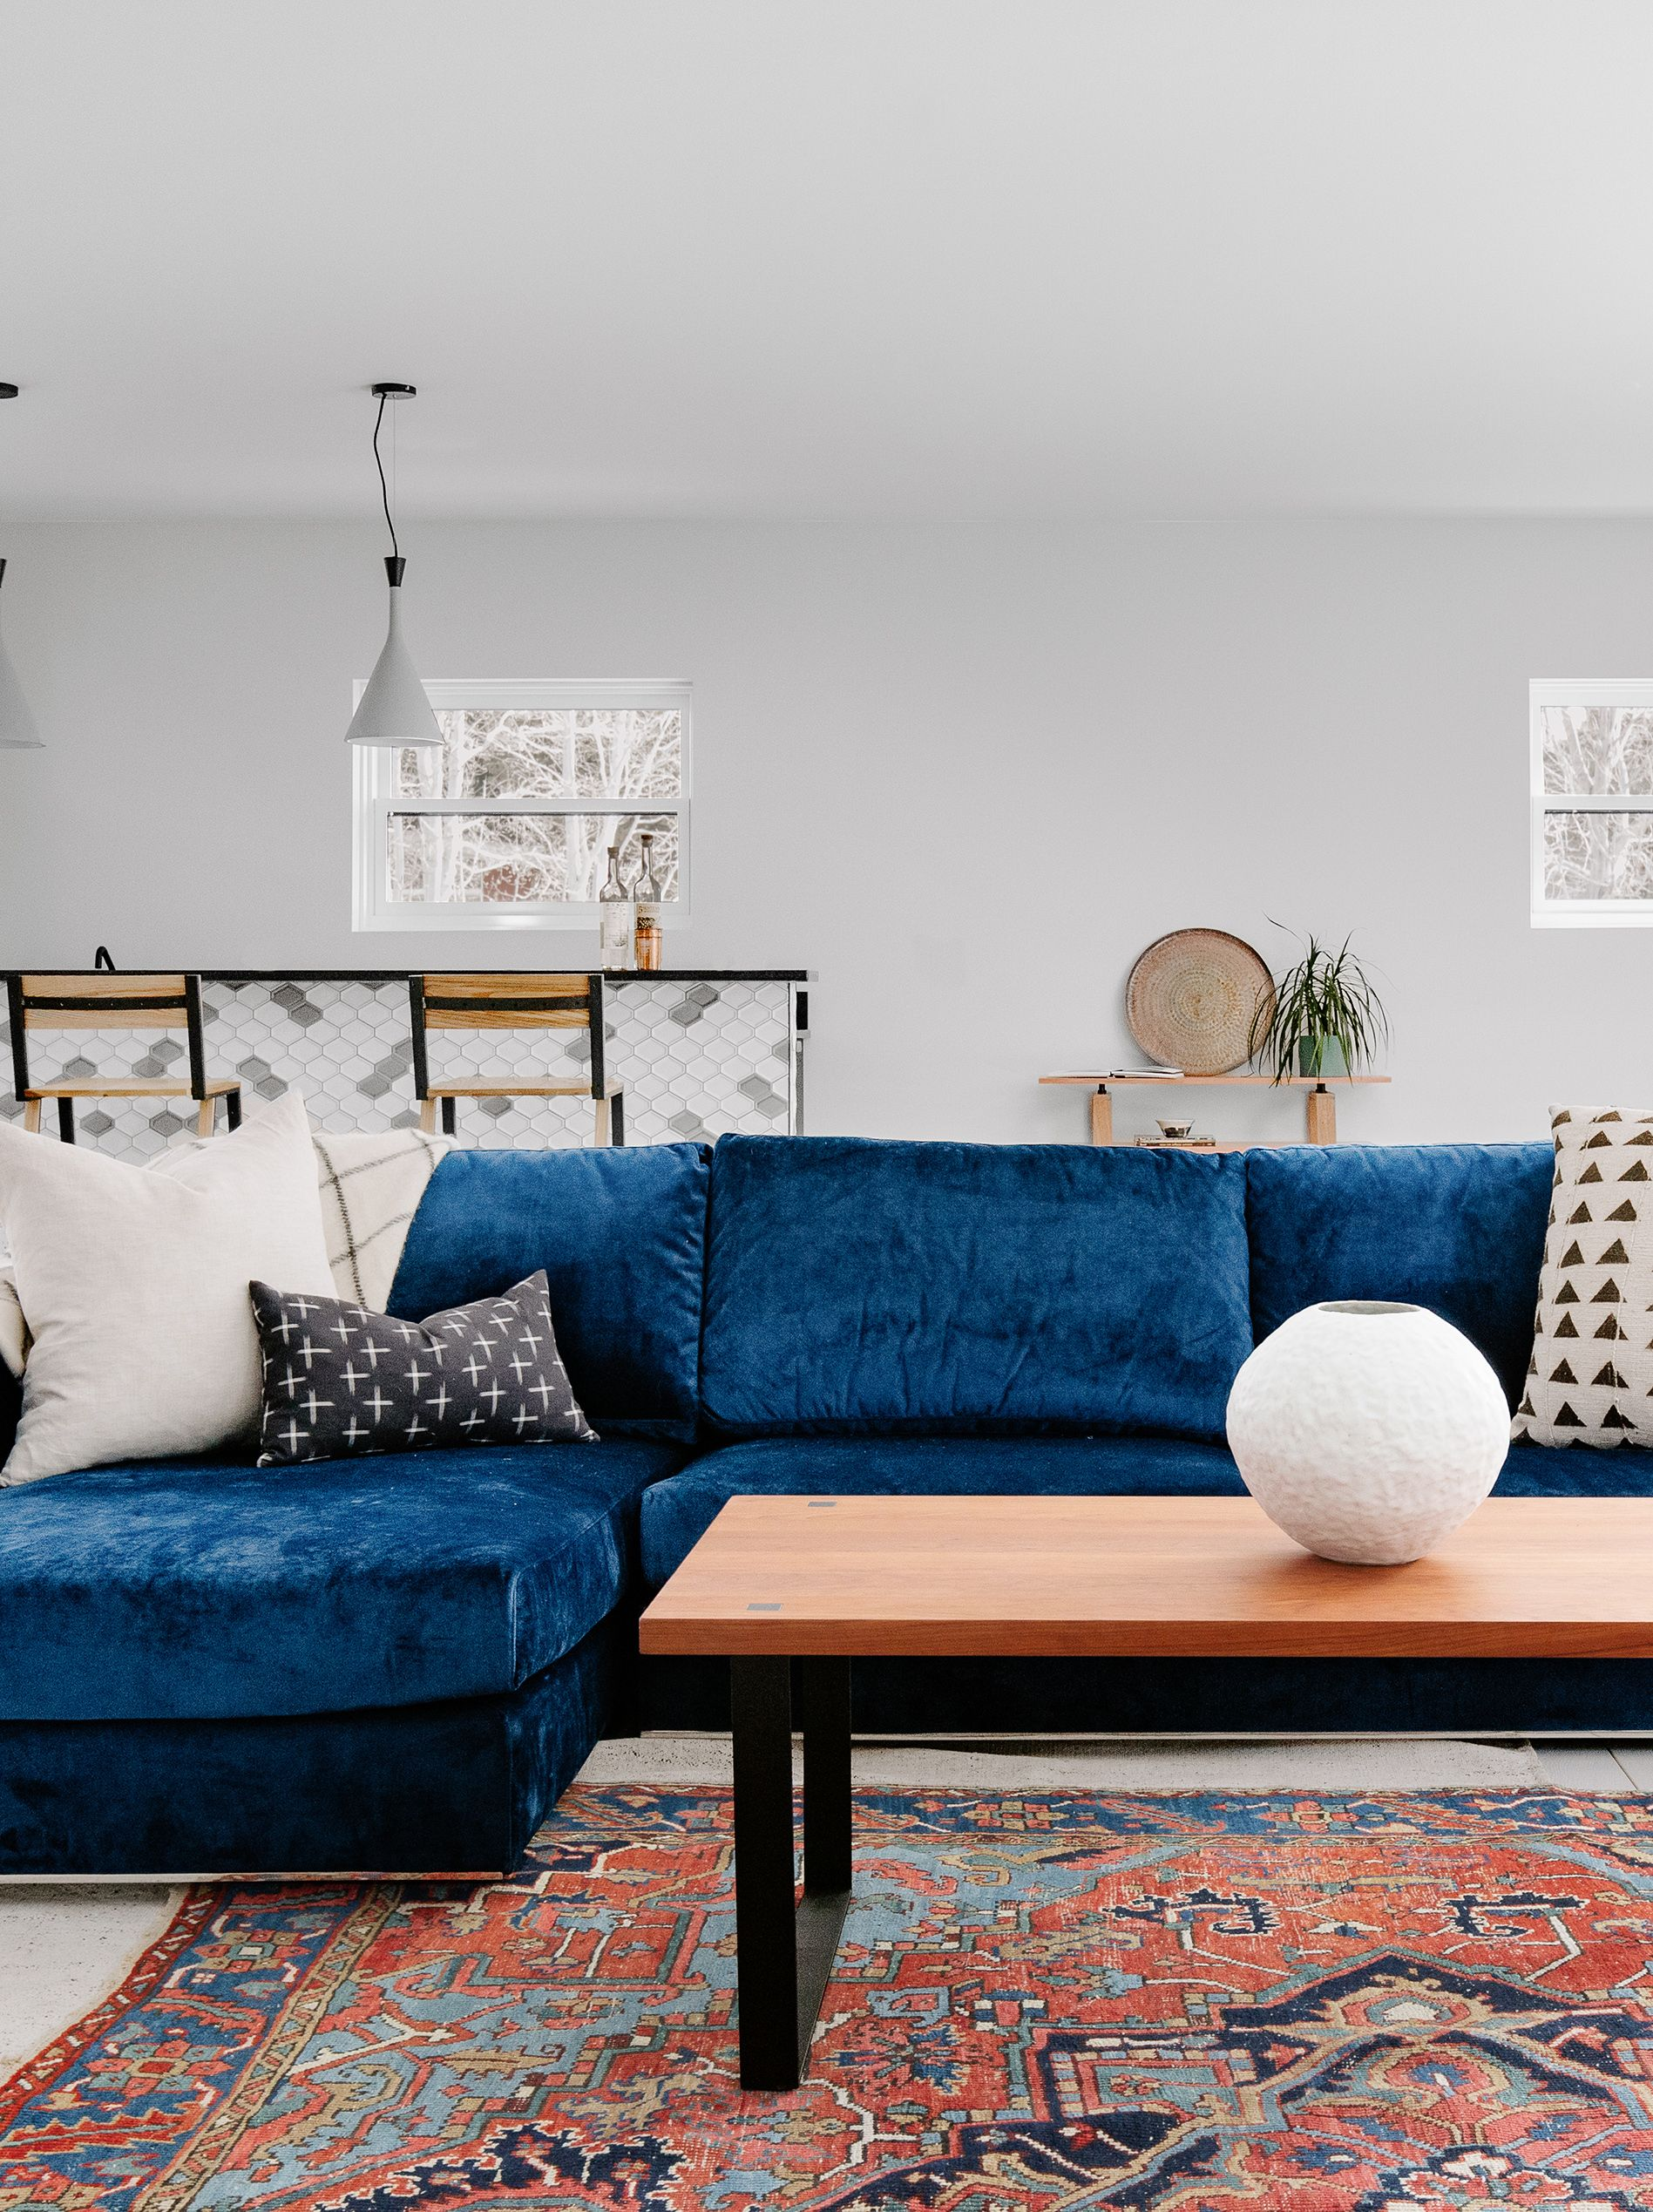 Stylist Bret Alexandra With Guesthouseshop Created This Lovely Living Room Indigo Blue Sectional From Interiordefine Vintage Rug Woonkamer Interieur Wonen